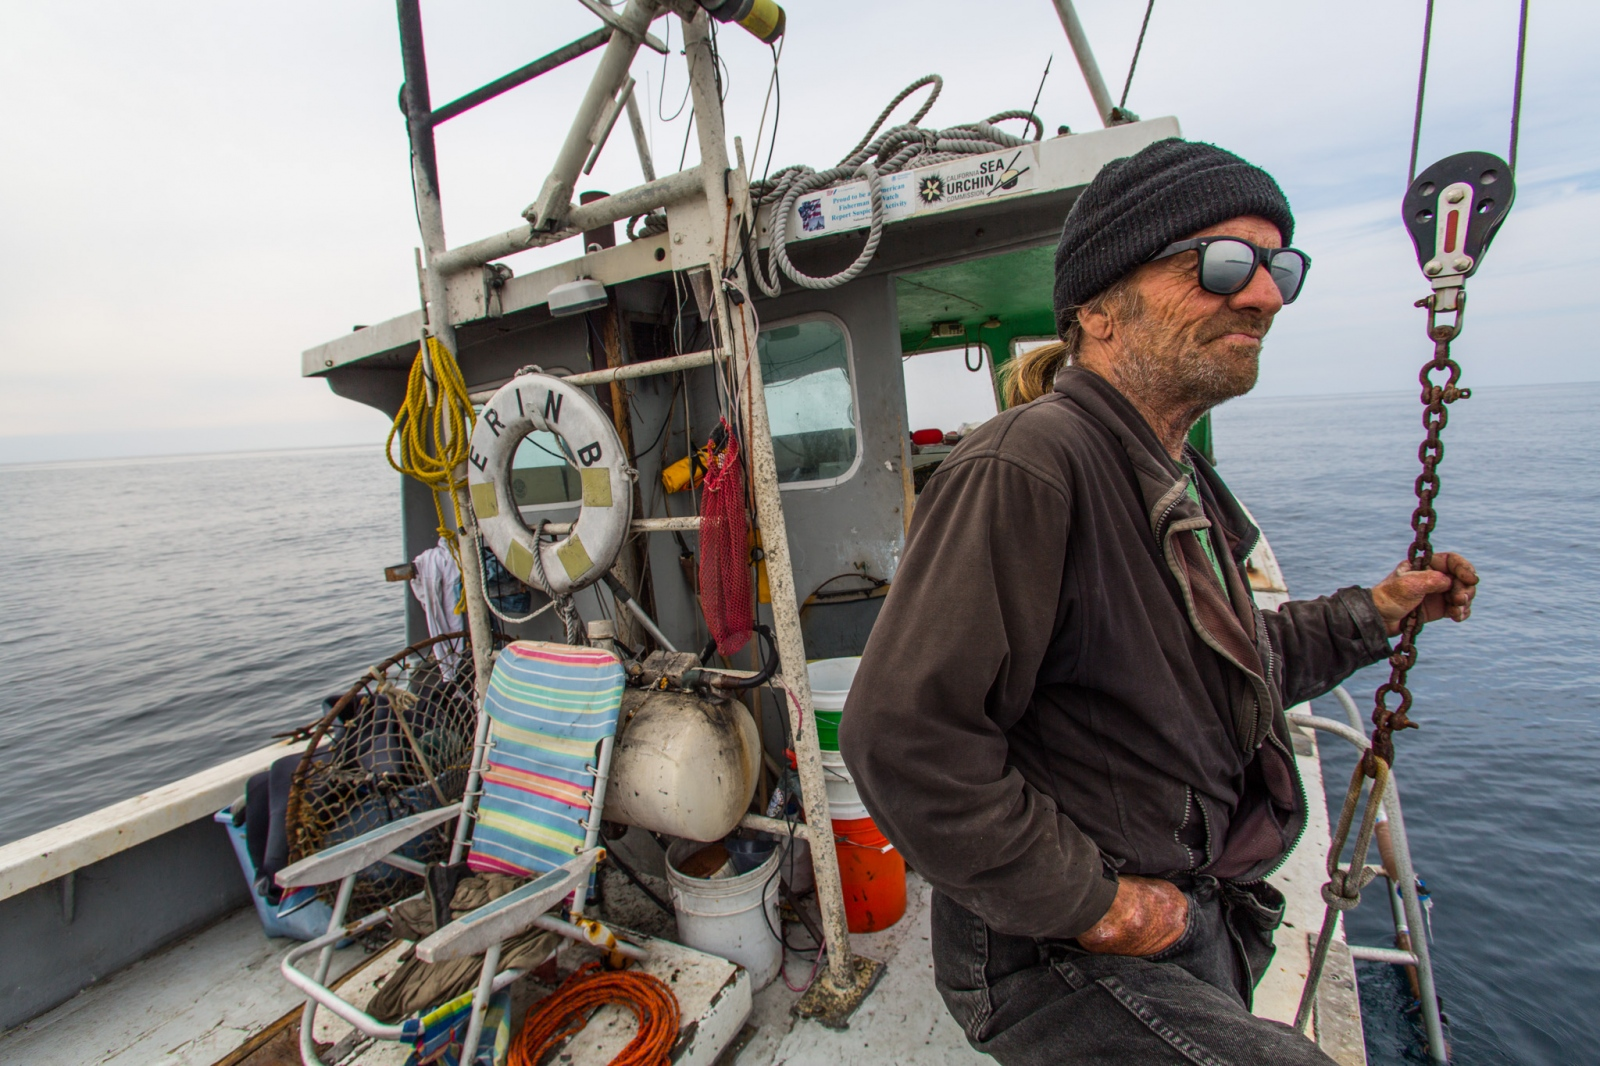 Kenny on the Erin B. out of San Diego, CA. From a personal project on new models in fisheries management.